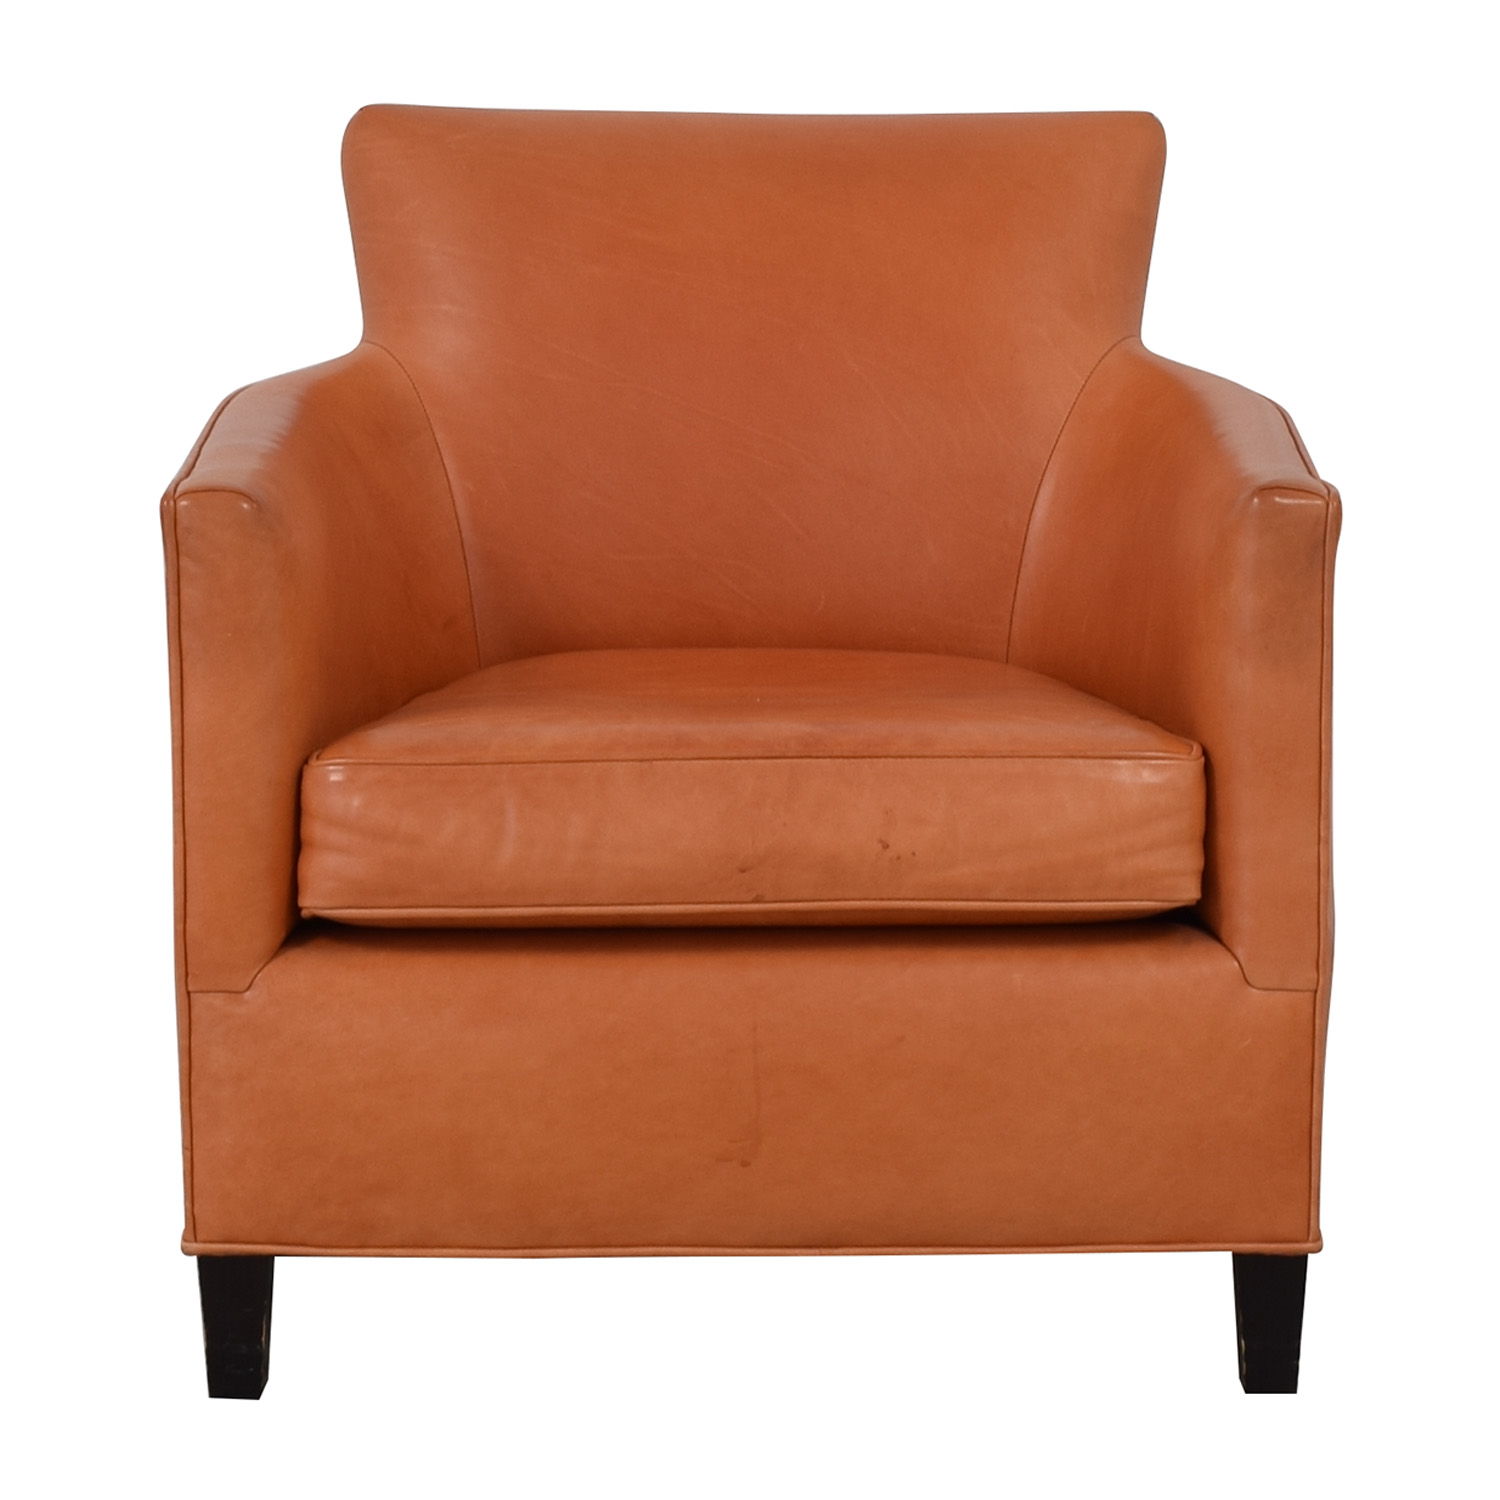 Crate & Barrel Crate & Barrel Orange Accent Chair Accent Chairs